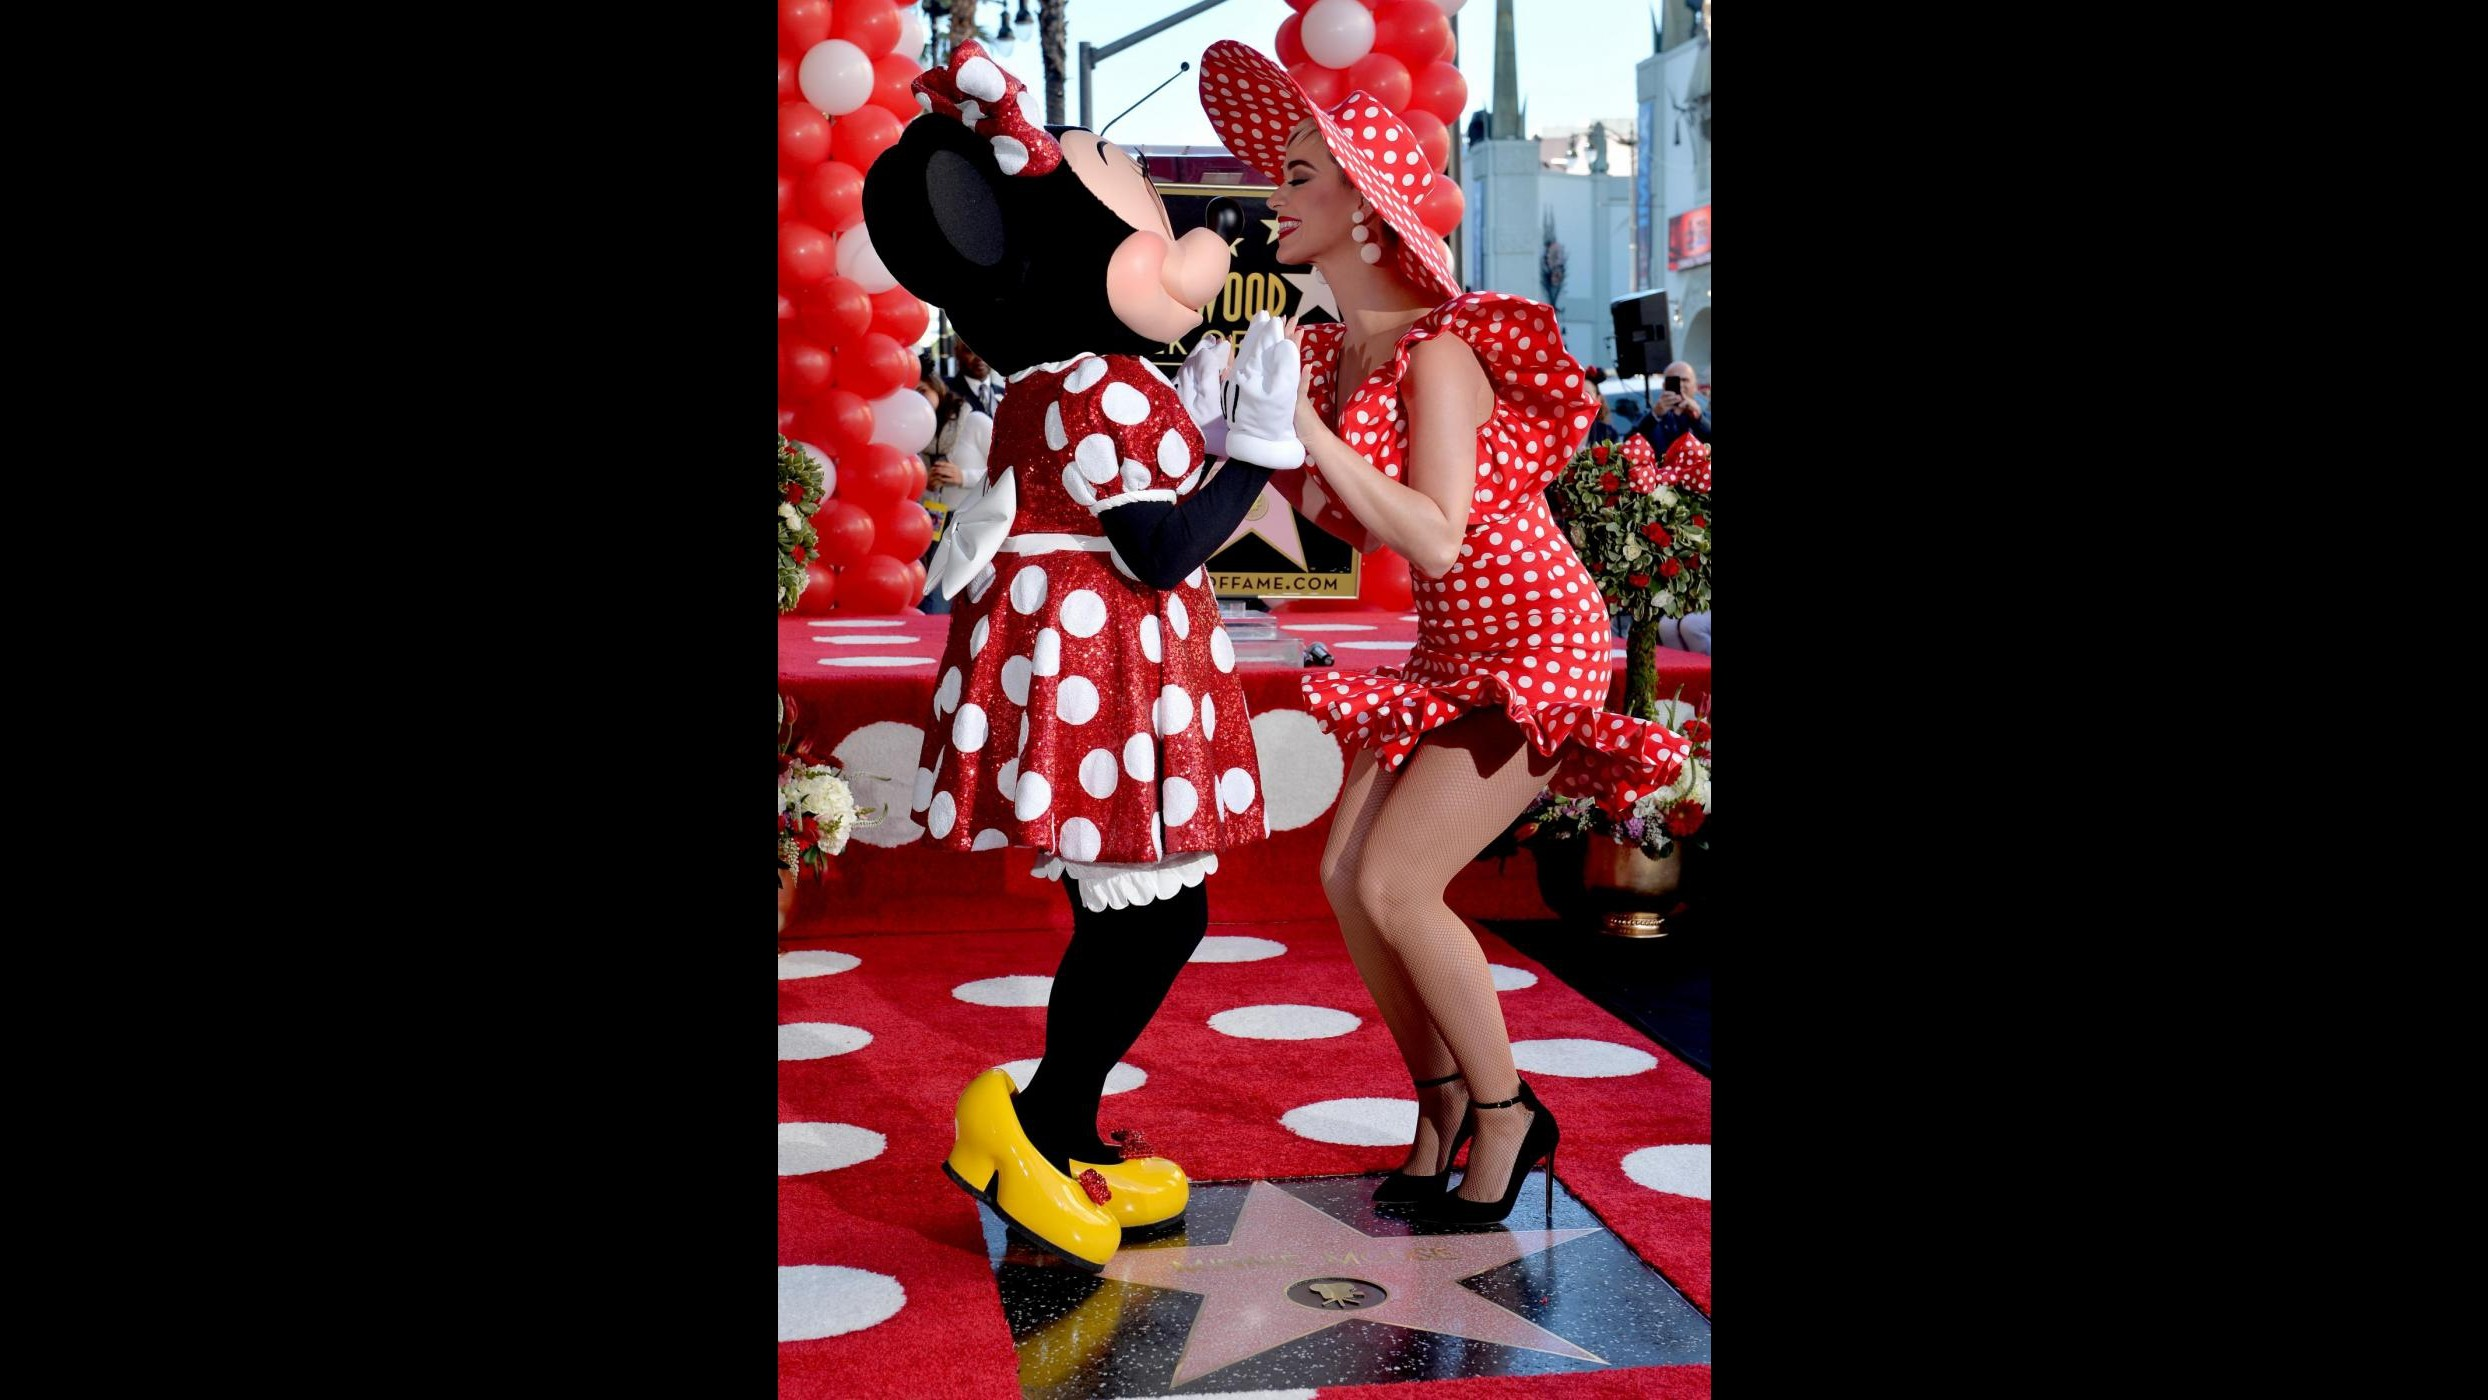 Hollywood onora Minnie: Katy Perry le assegna una stella sulla Walk of Fame